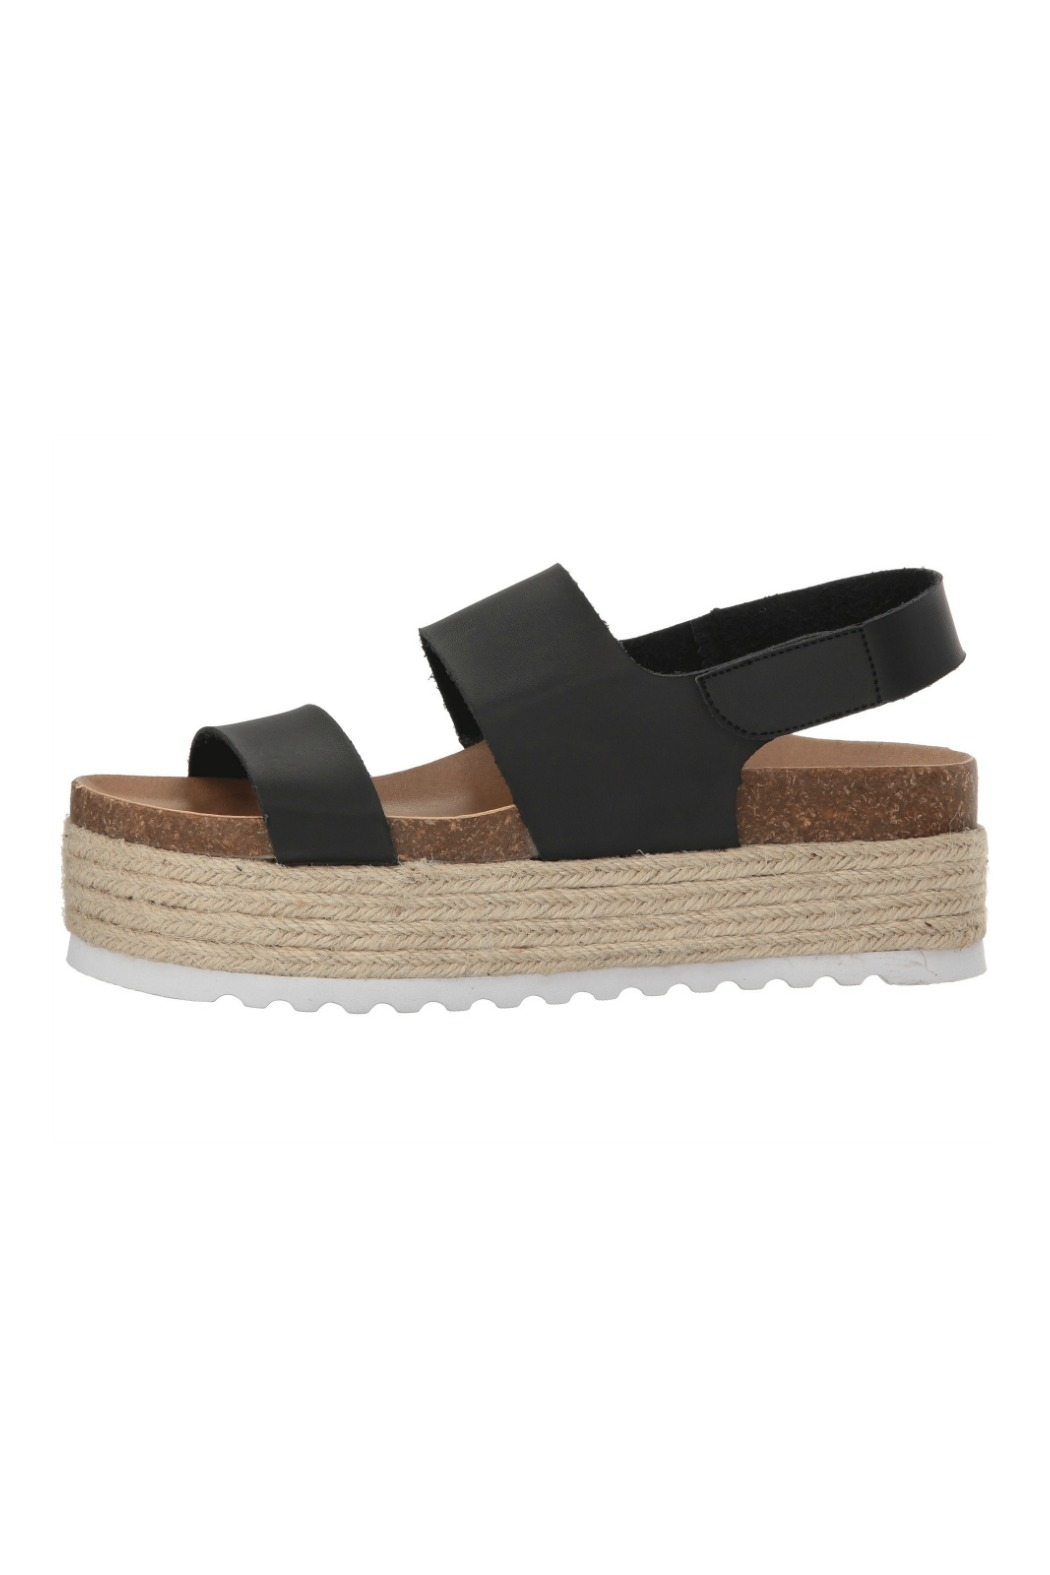 5442c69dce69 Dirty Laundry Peyton Platform Sandal from Louisiana by Bella Bella ...